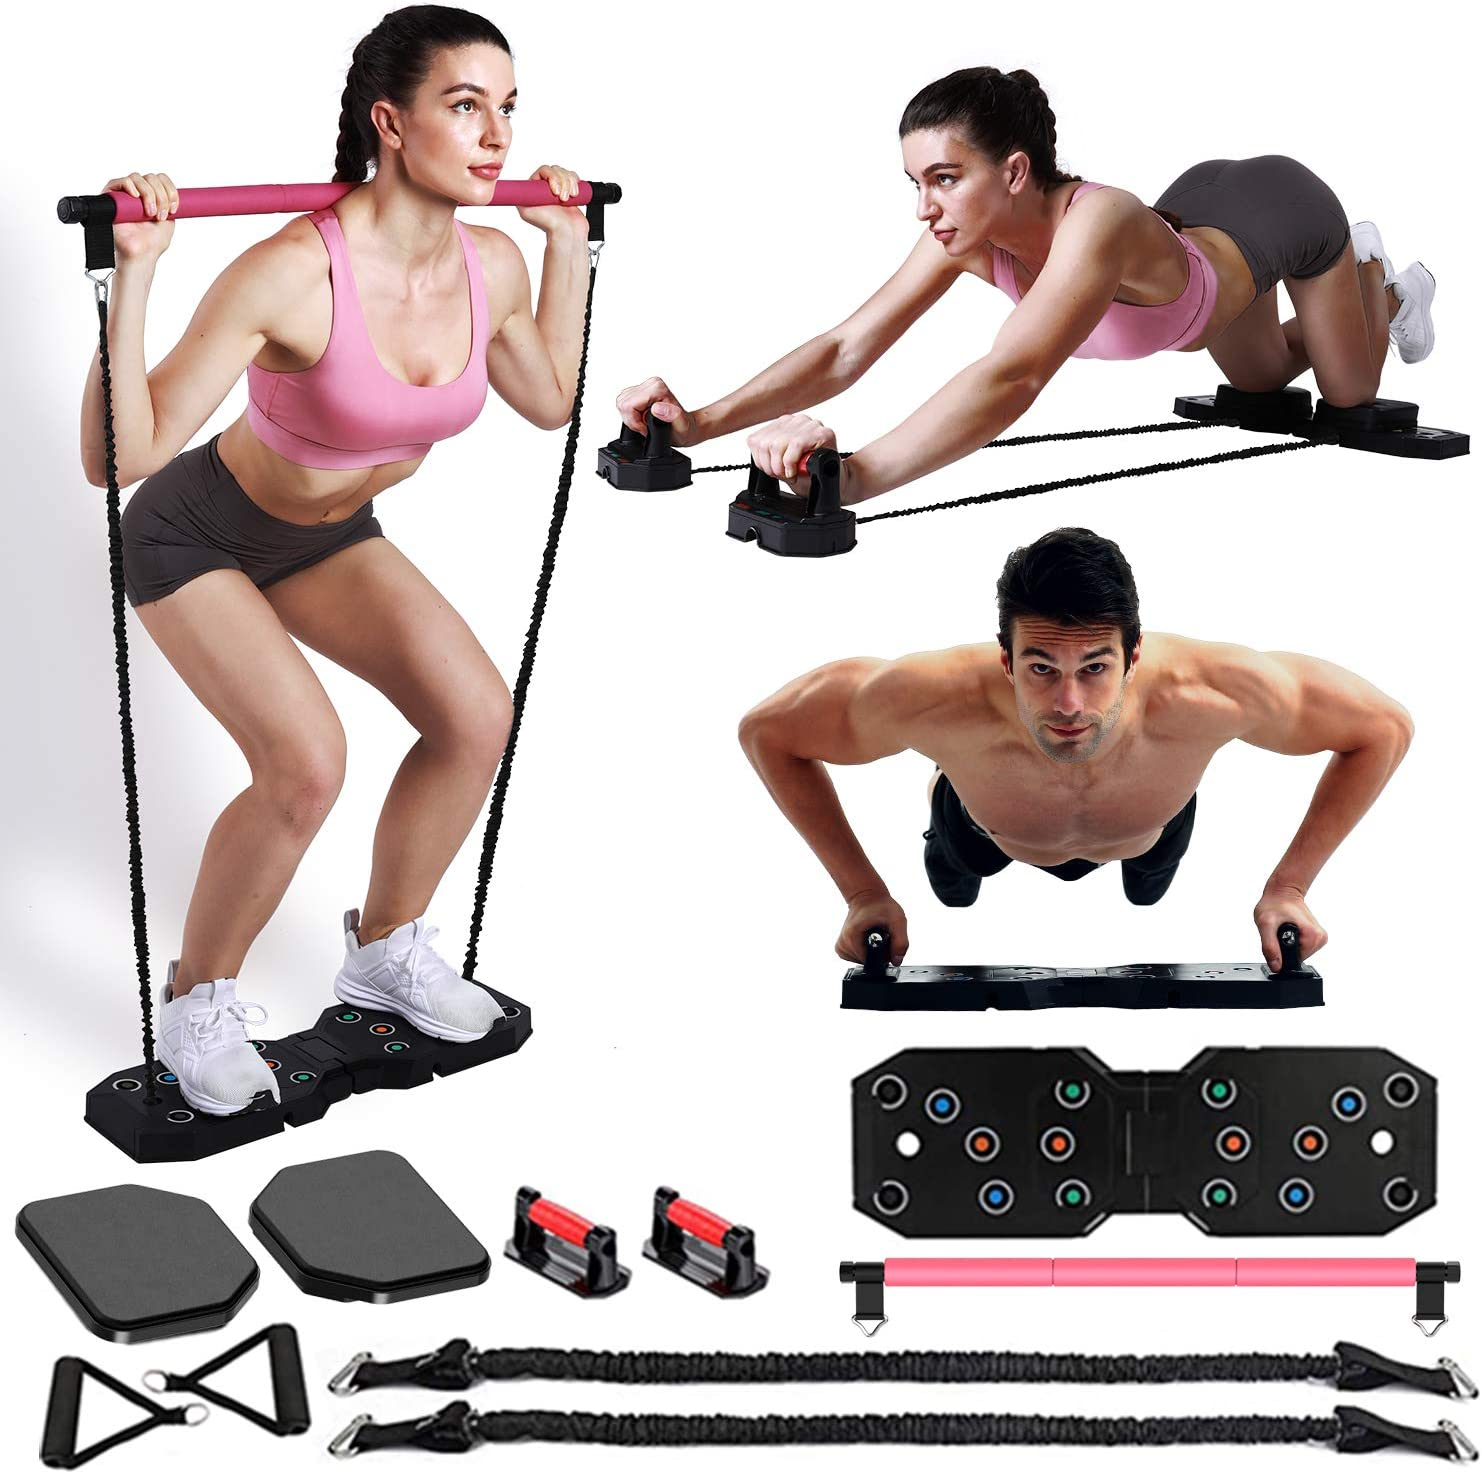 EAST MOUNT Portable Home Gym Workout Equipment, Exercise Equipment with Pilates Bar Resistance Bands Ab Wheel, Full Body Workout to Build Muscle and Burn Fat.